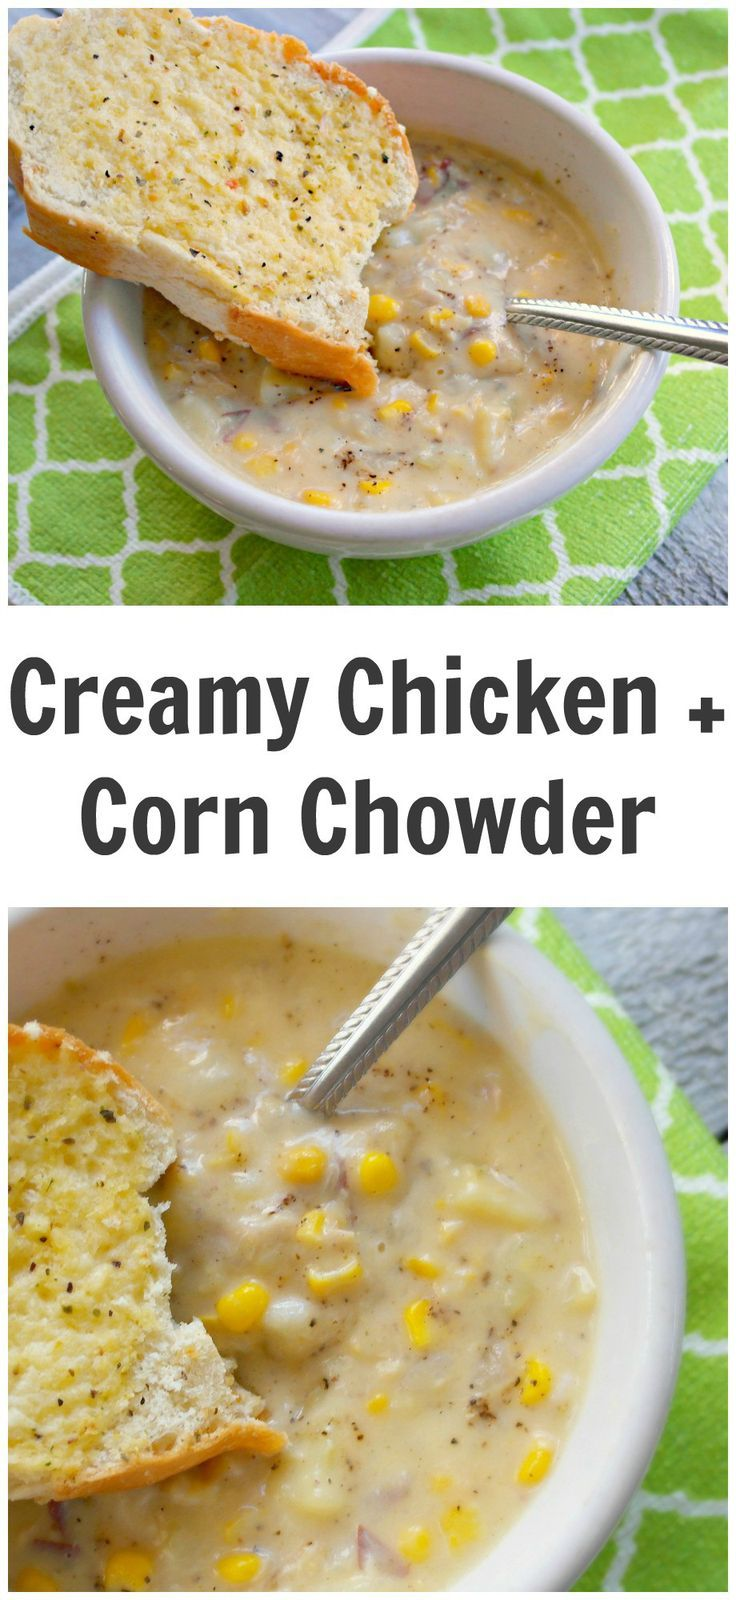 Today's Daily Dish Recipe is Creamy Chicken and Corn Chowder. Can even be made in the crock pot!